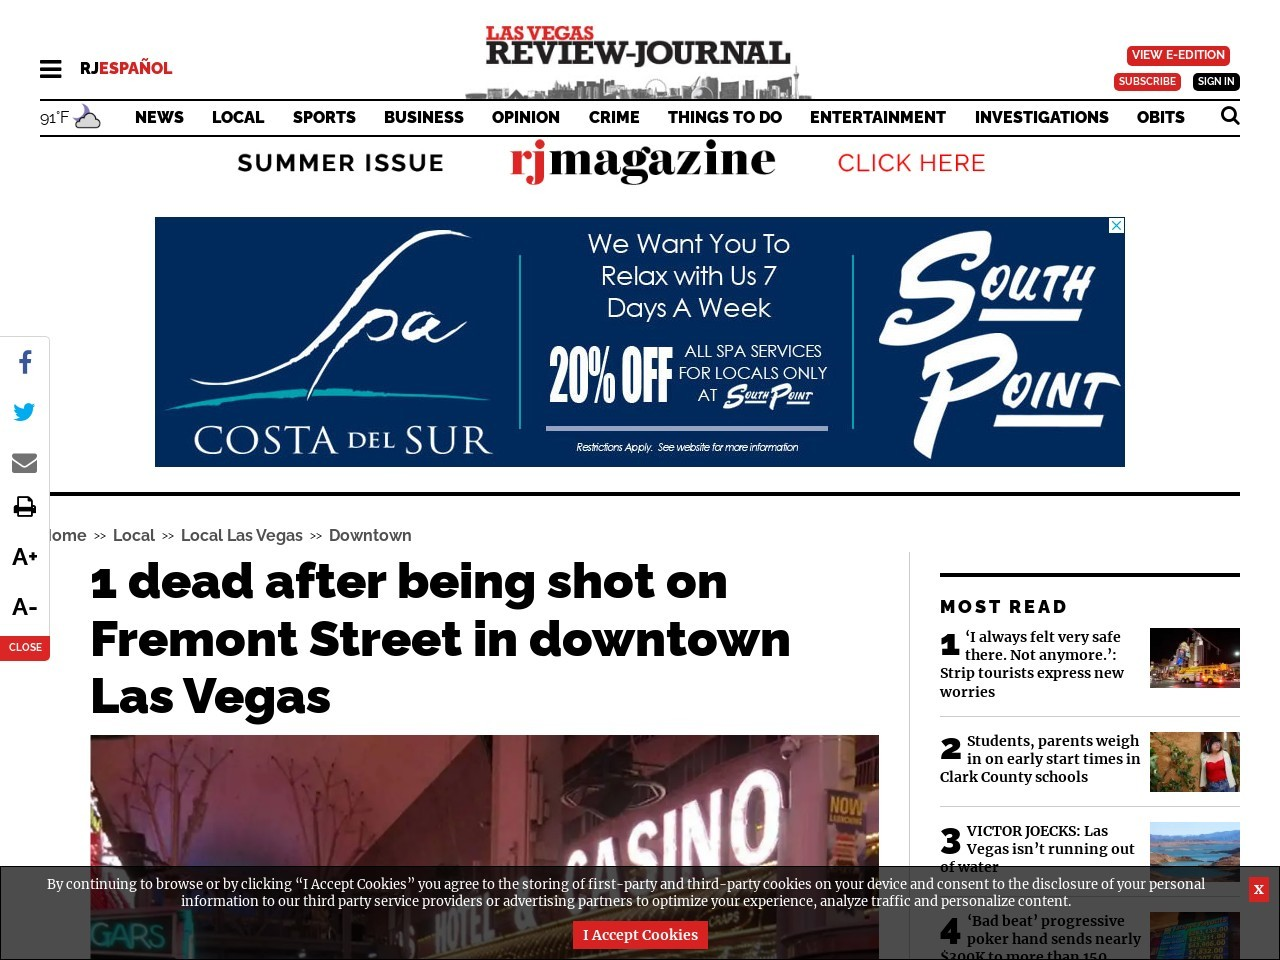 1 dead after being shot on Fremont Street in downtown Las Vegas